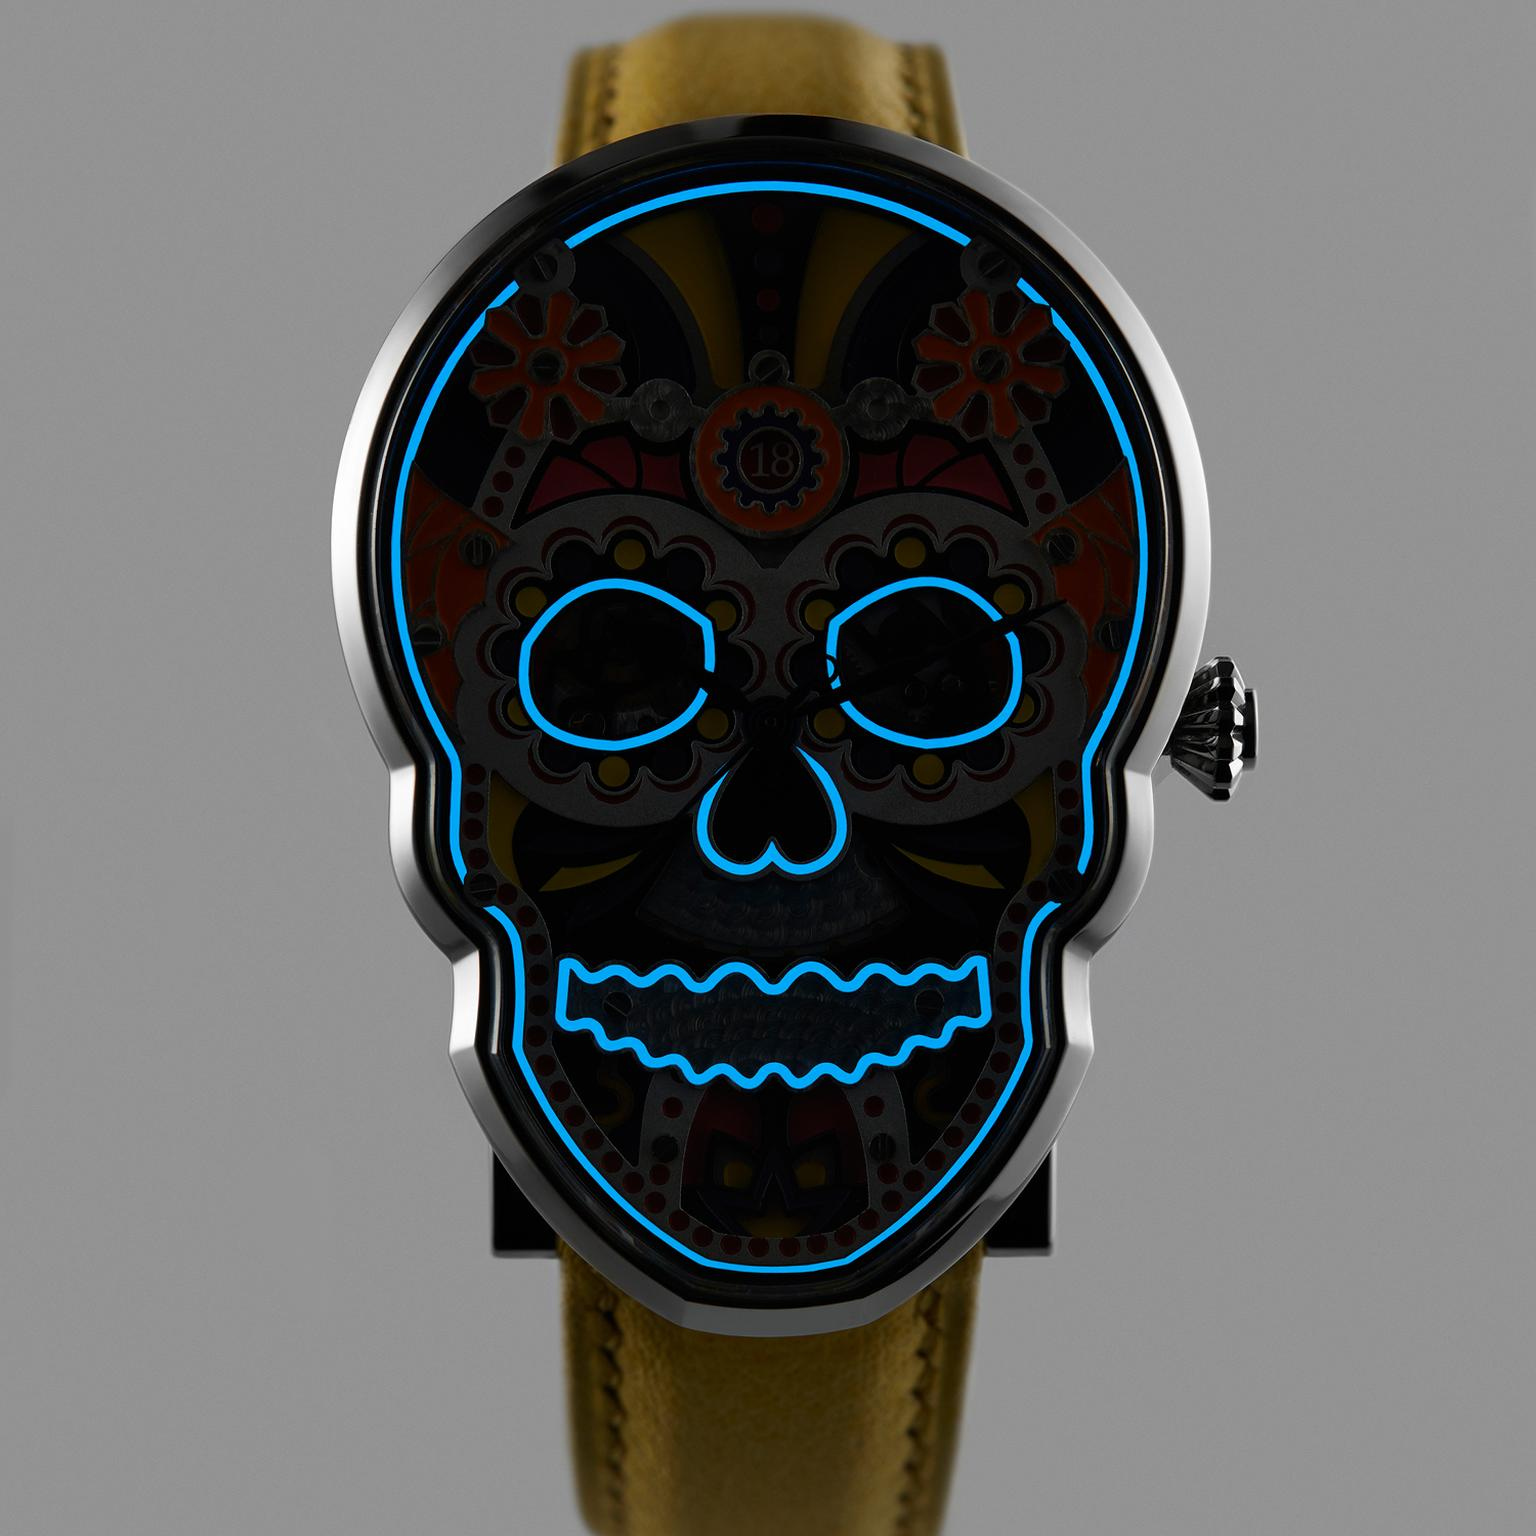 Fiona Kruger's Celebration Skull watch lights up in the dark